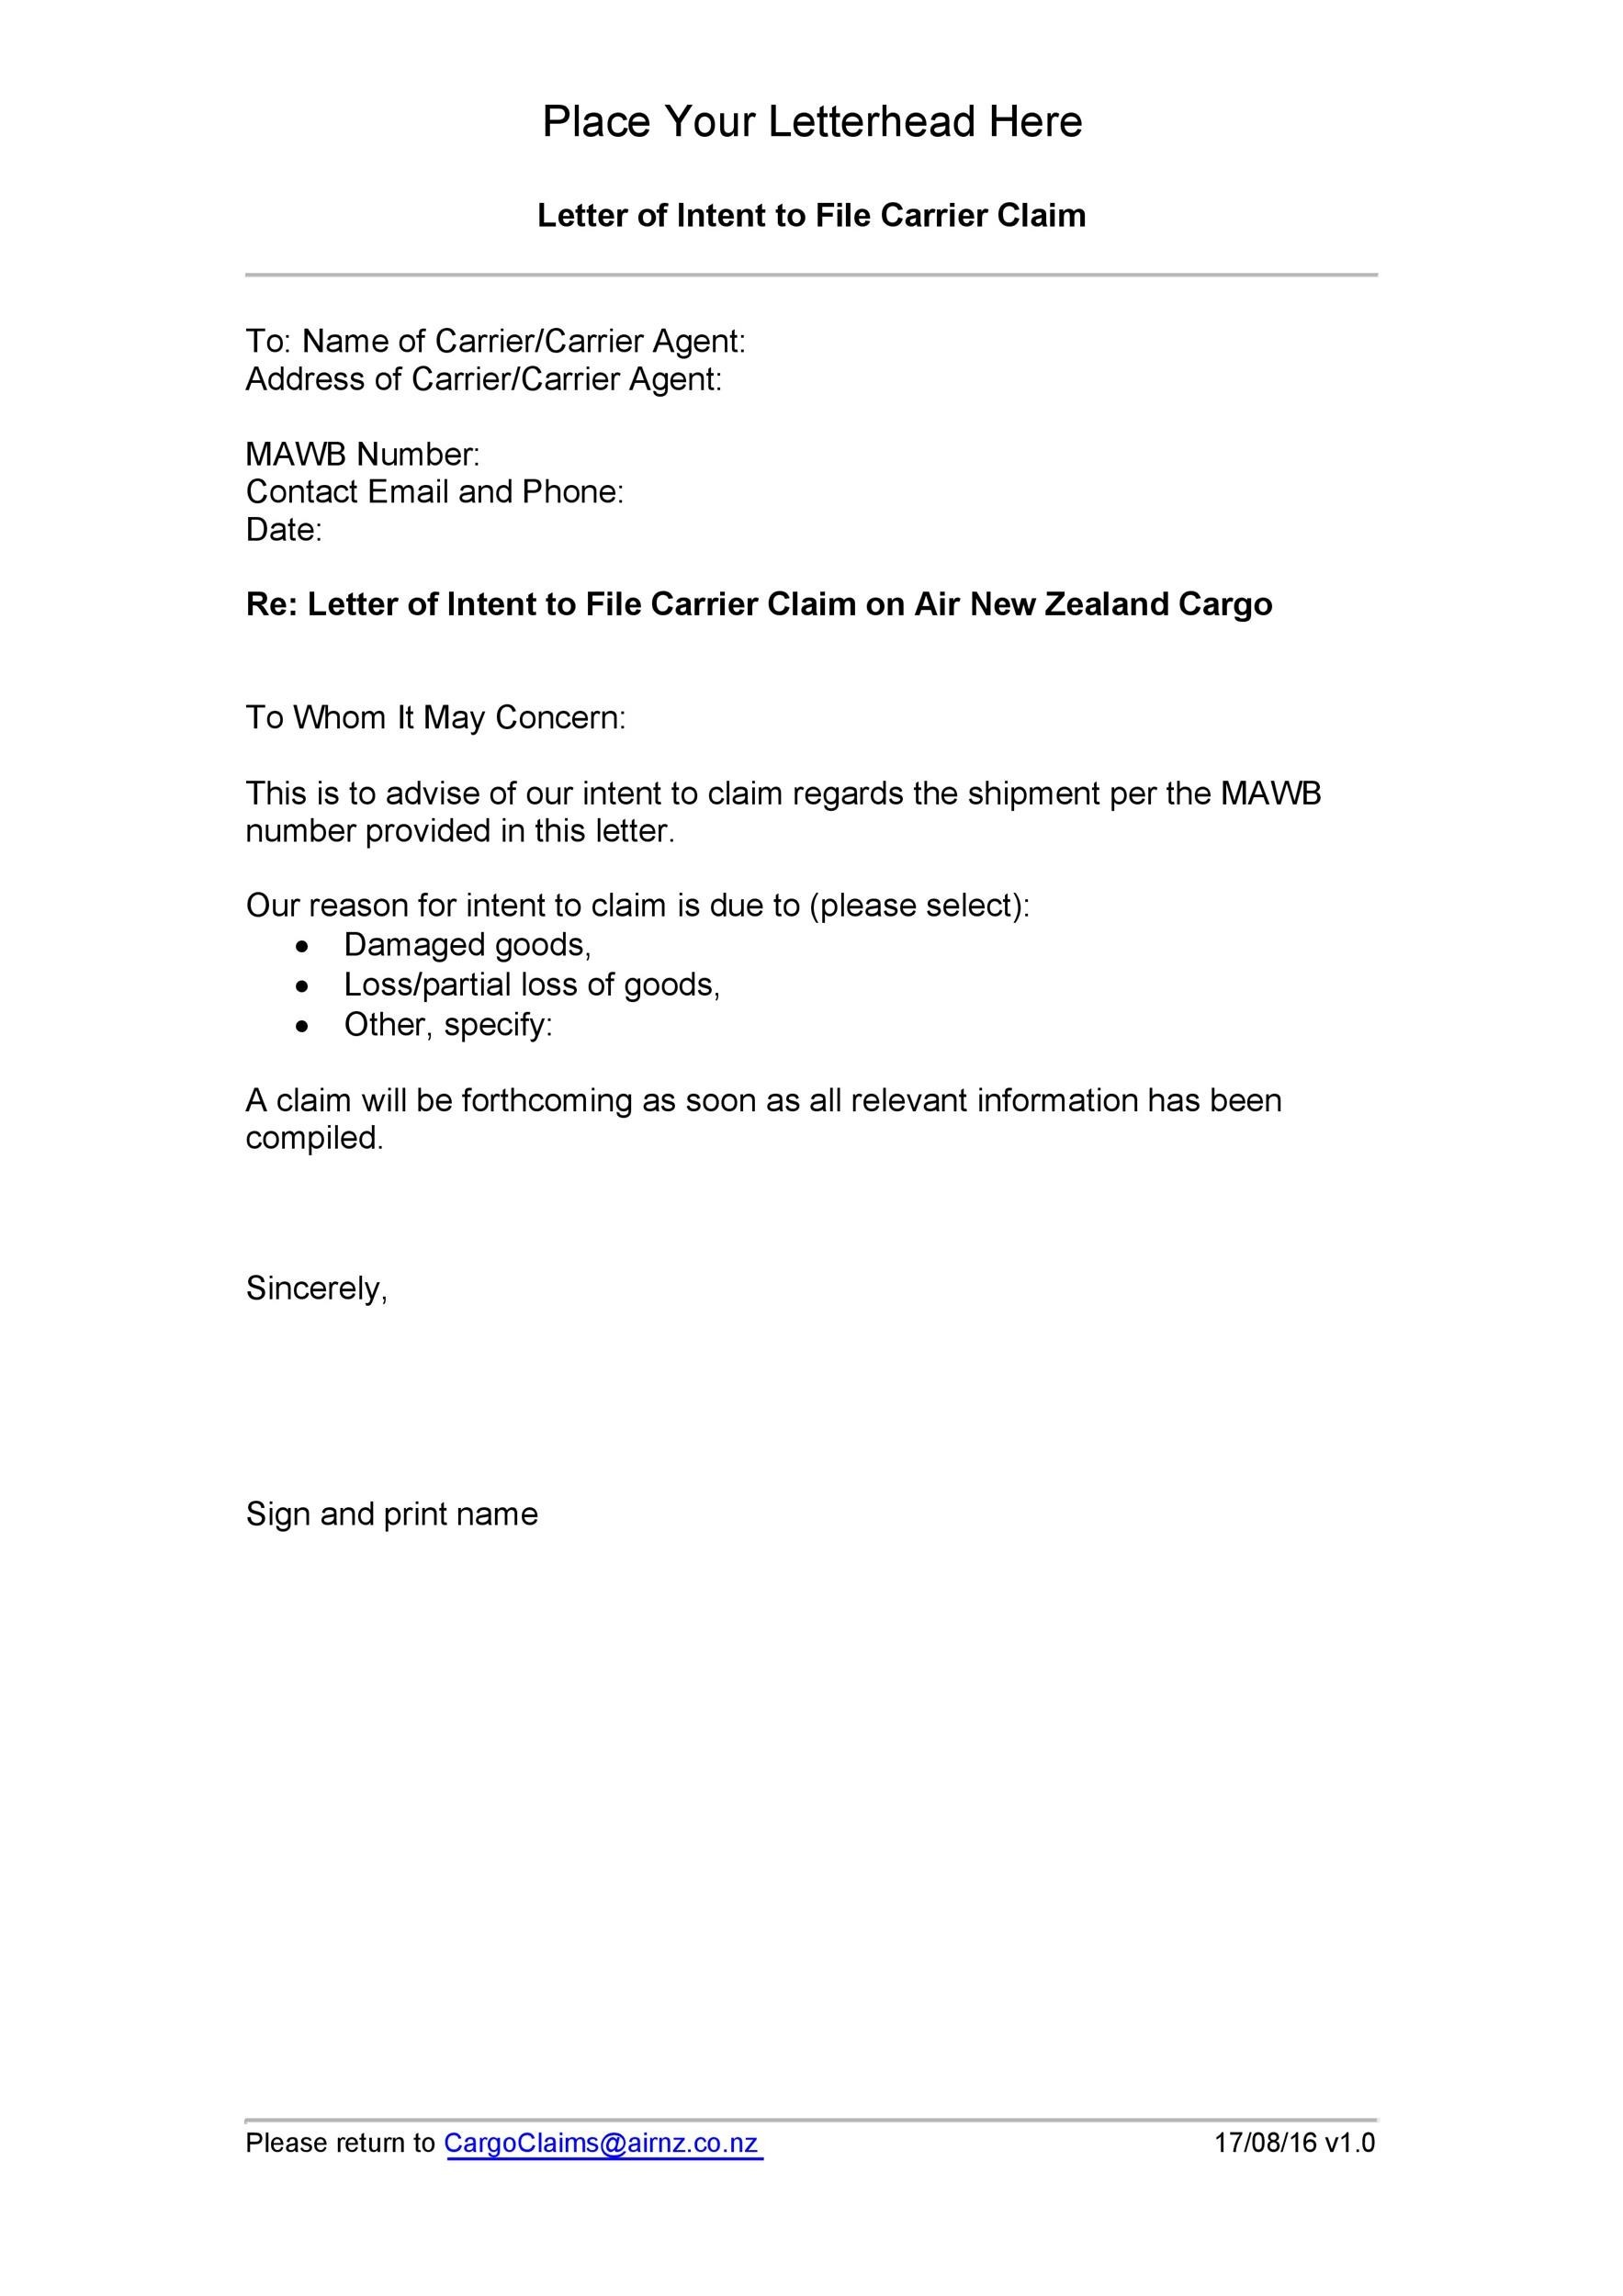 49 Free Claim Letter Examples - How to Write a Claim Letter?